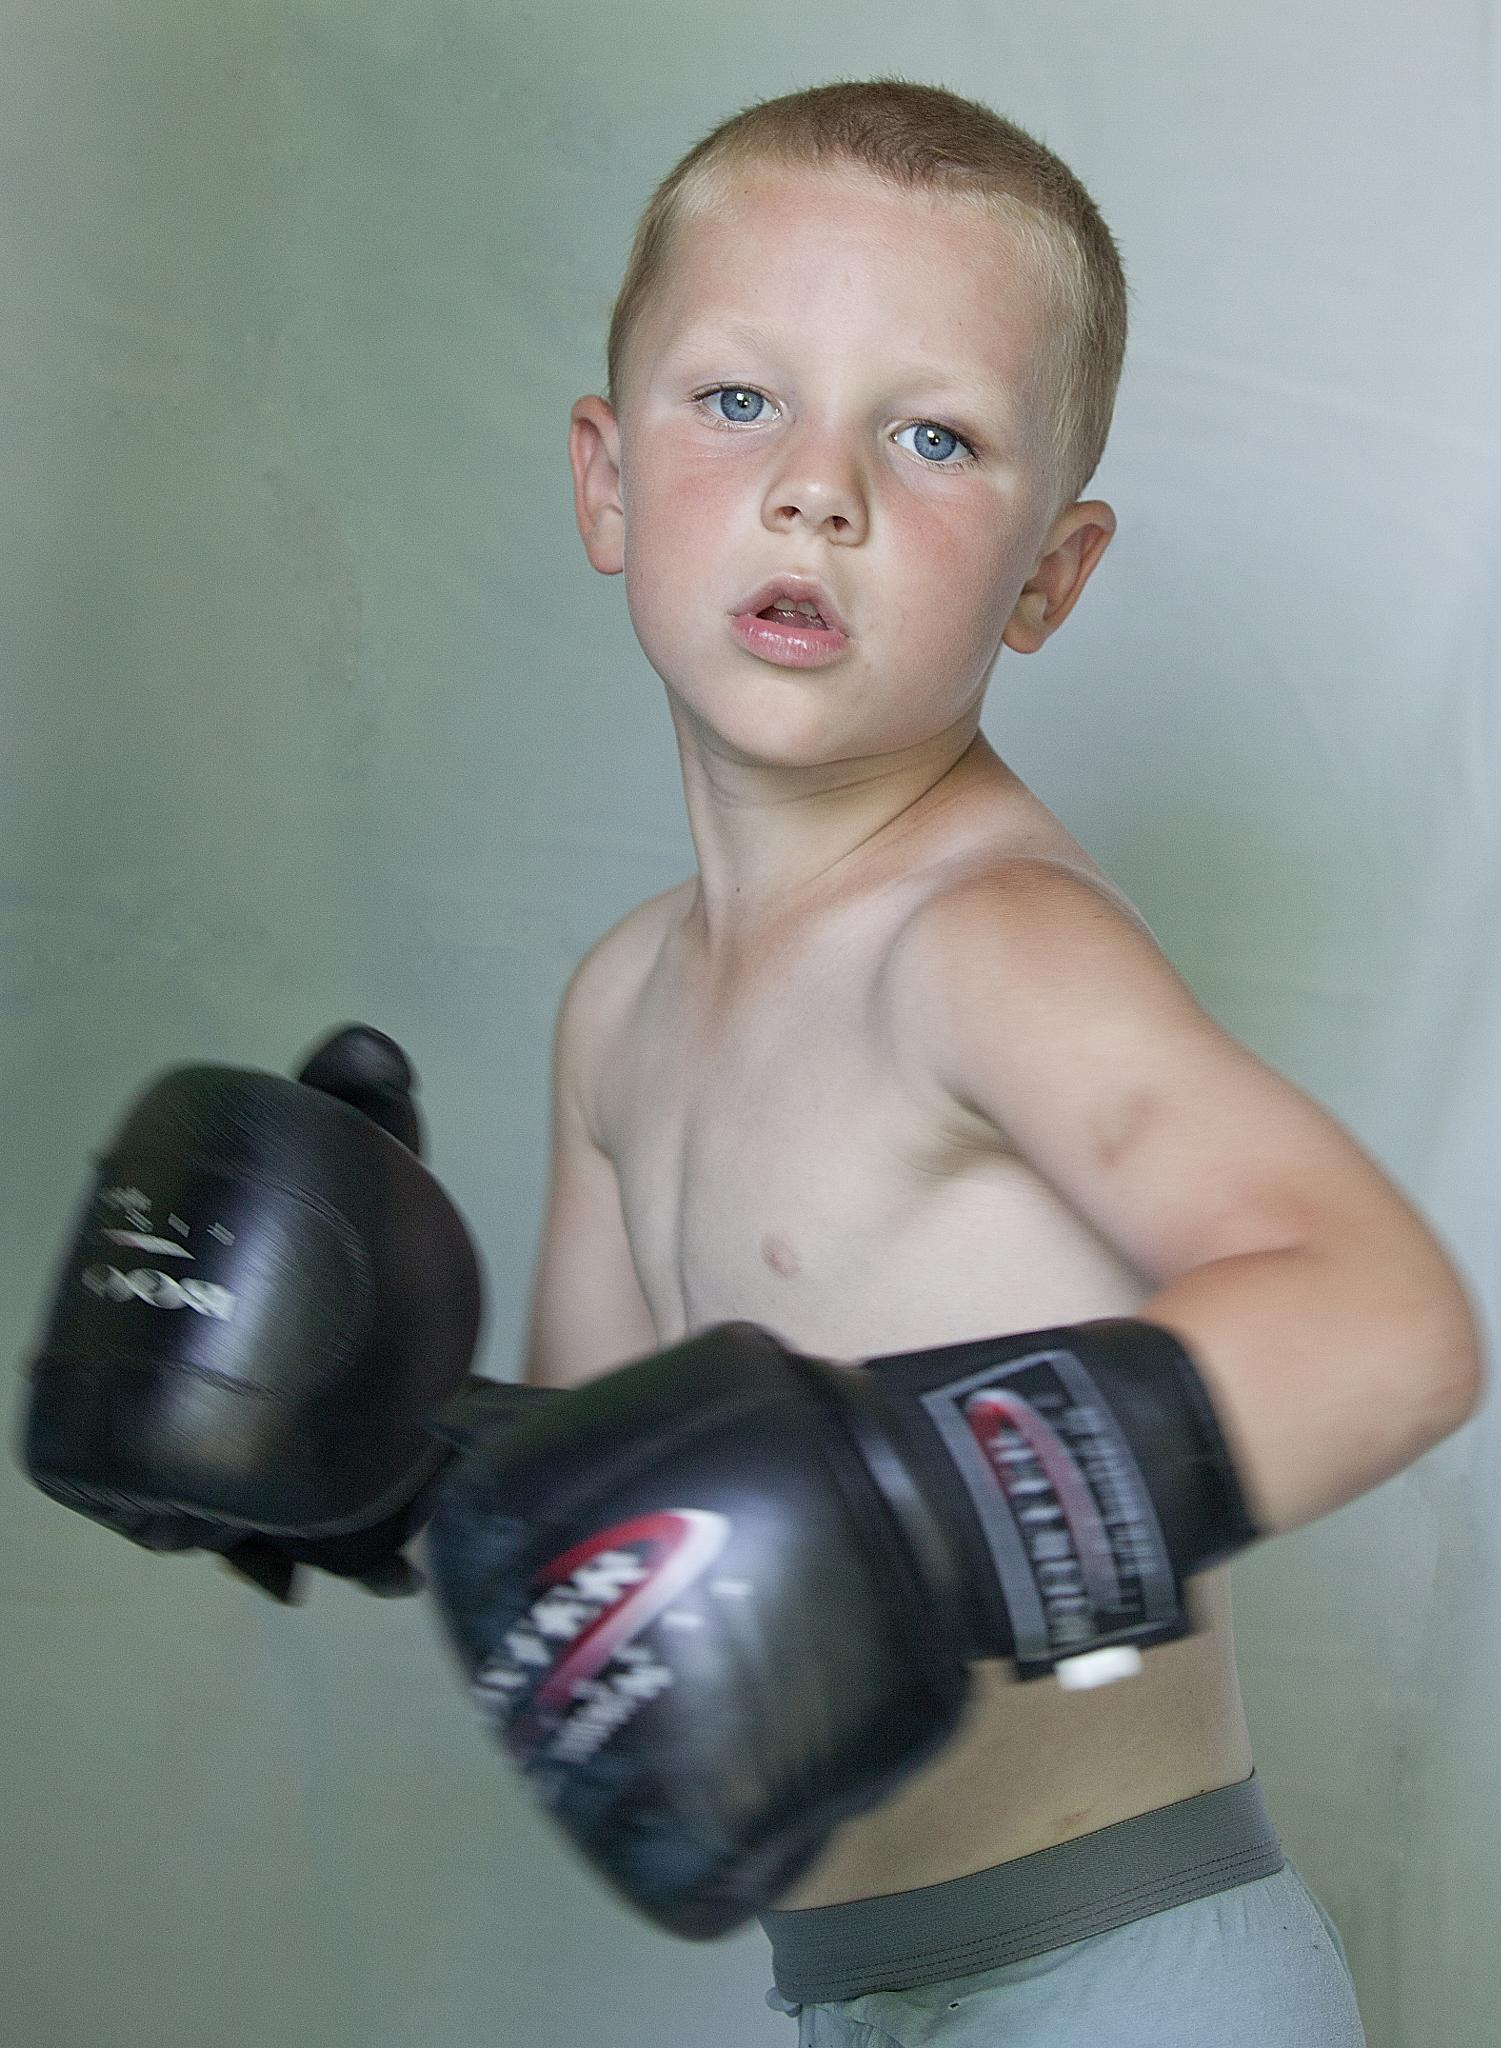 Young fighter by stam.john1